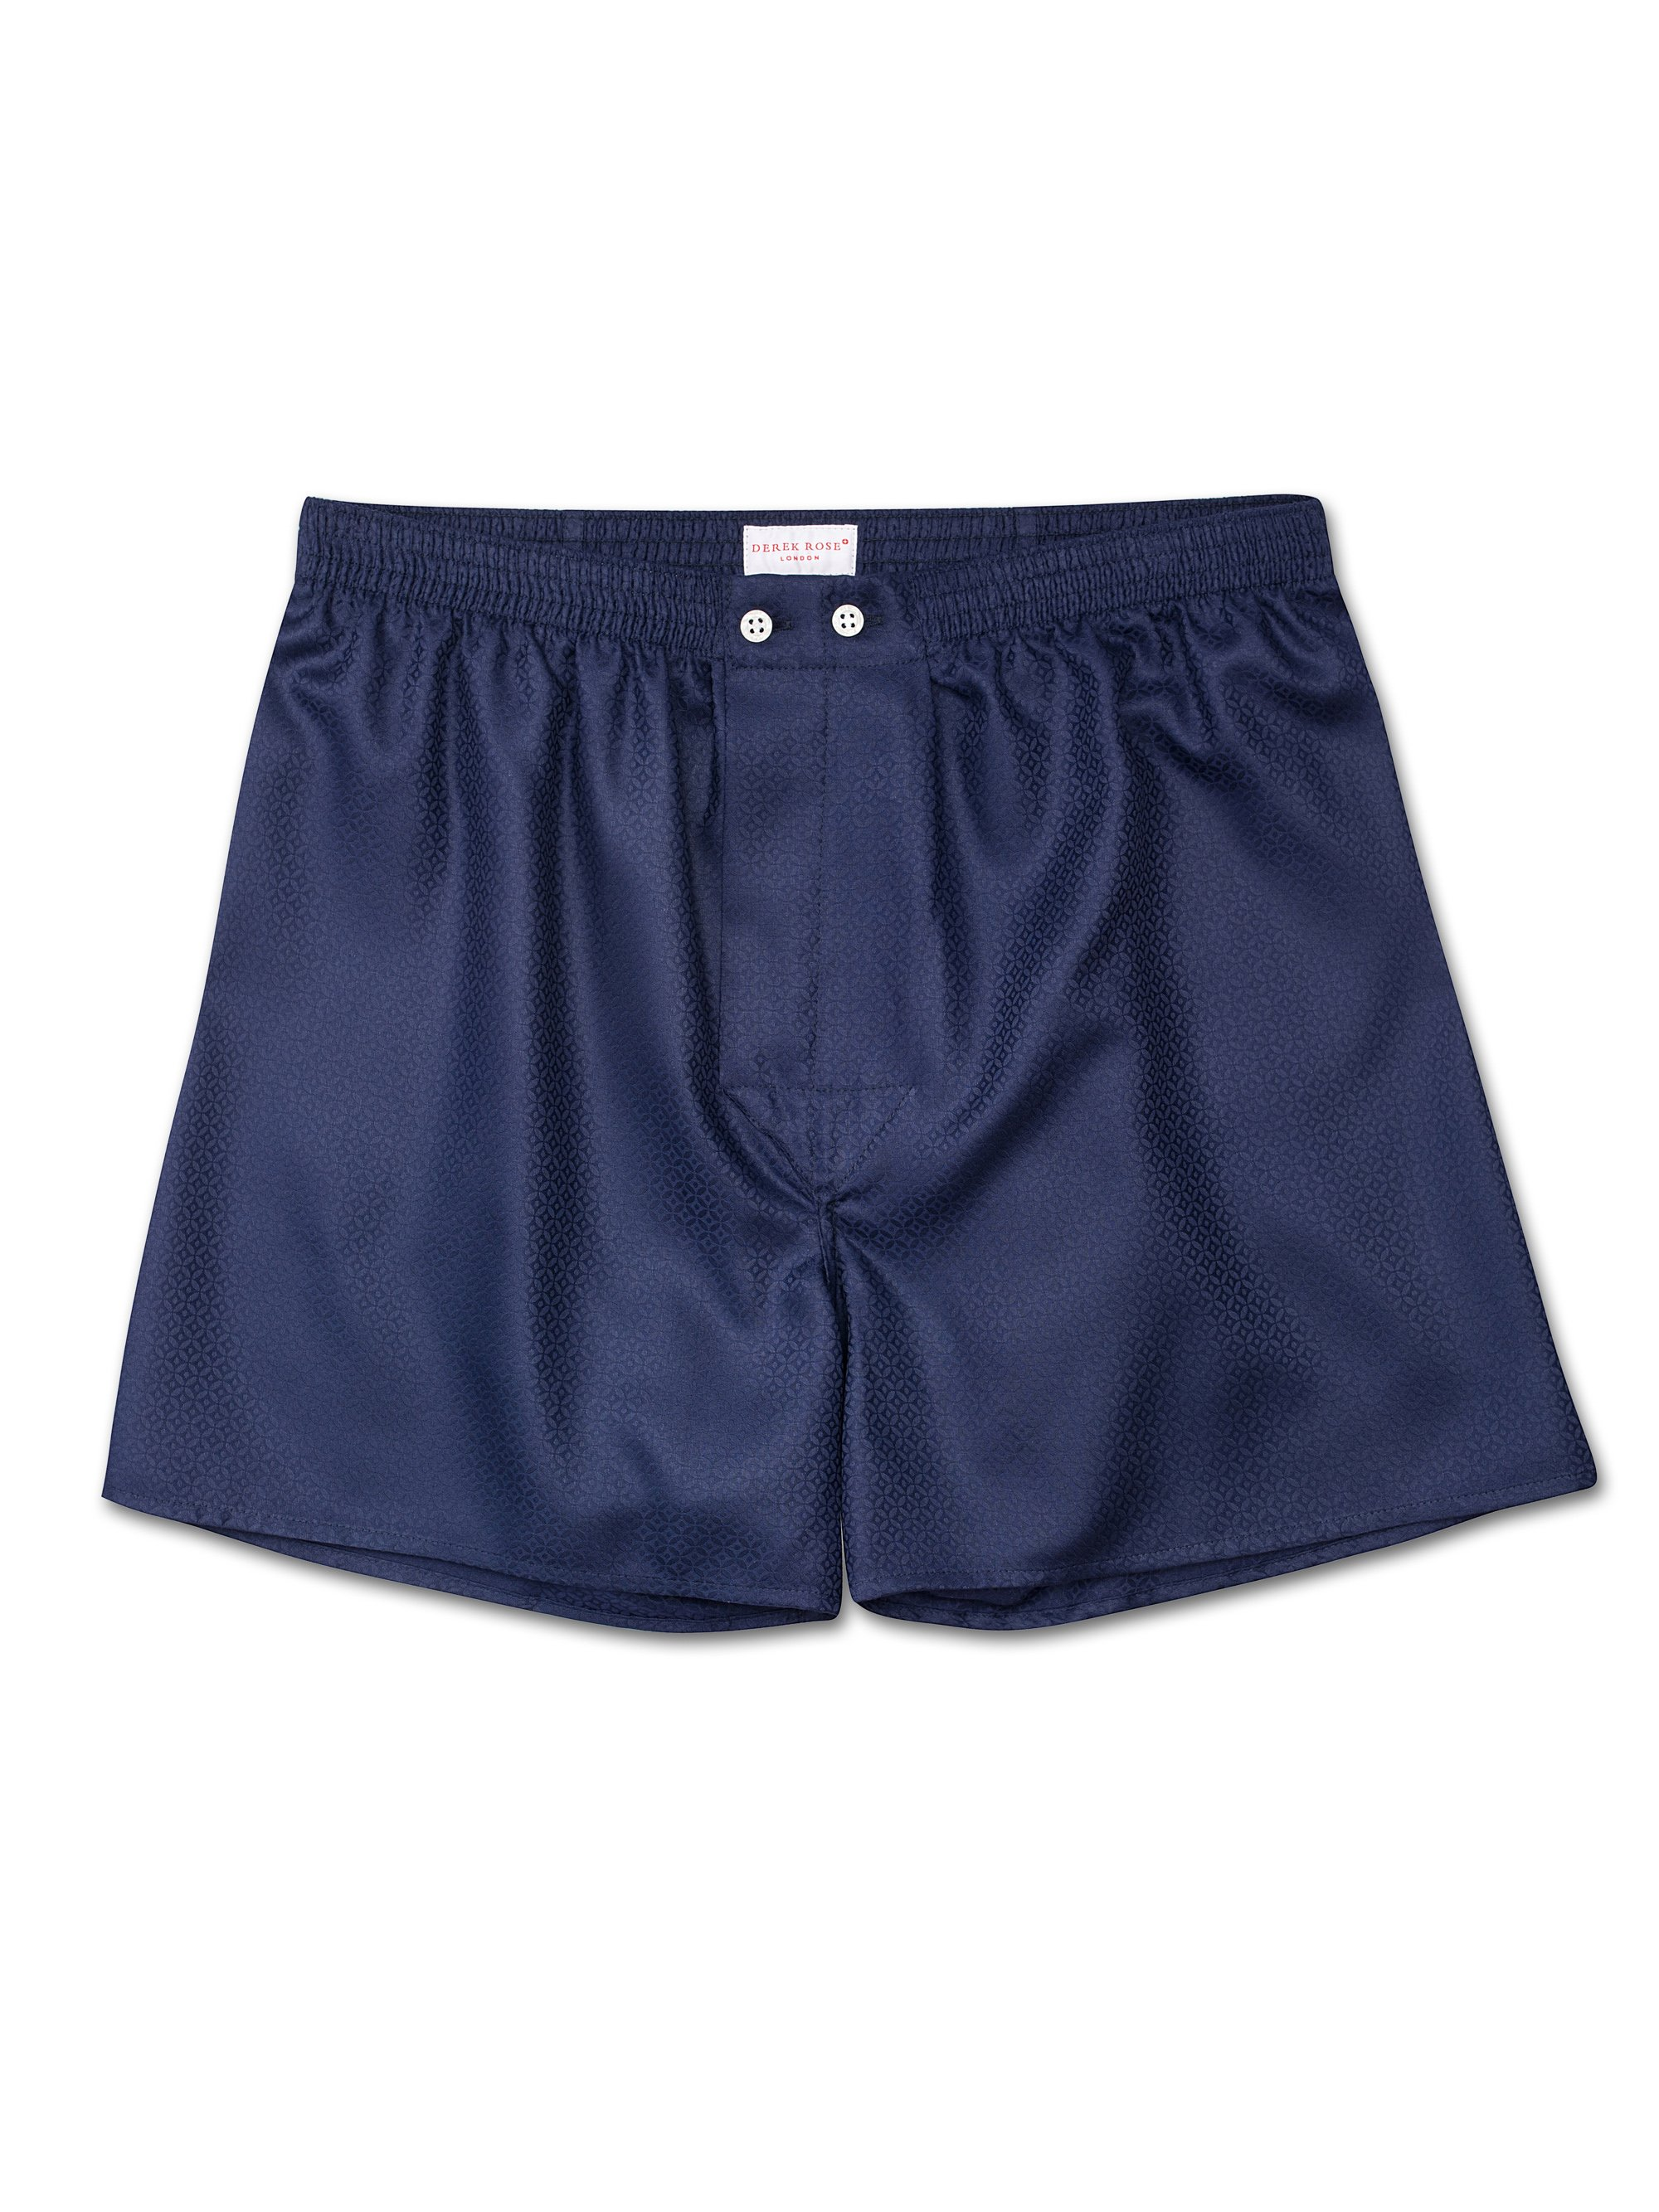 Men's Classic Fit Boxer Shorts Lombard 6 Cotton Jacquard Navy